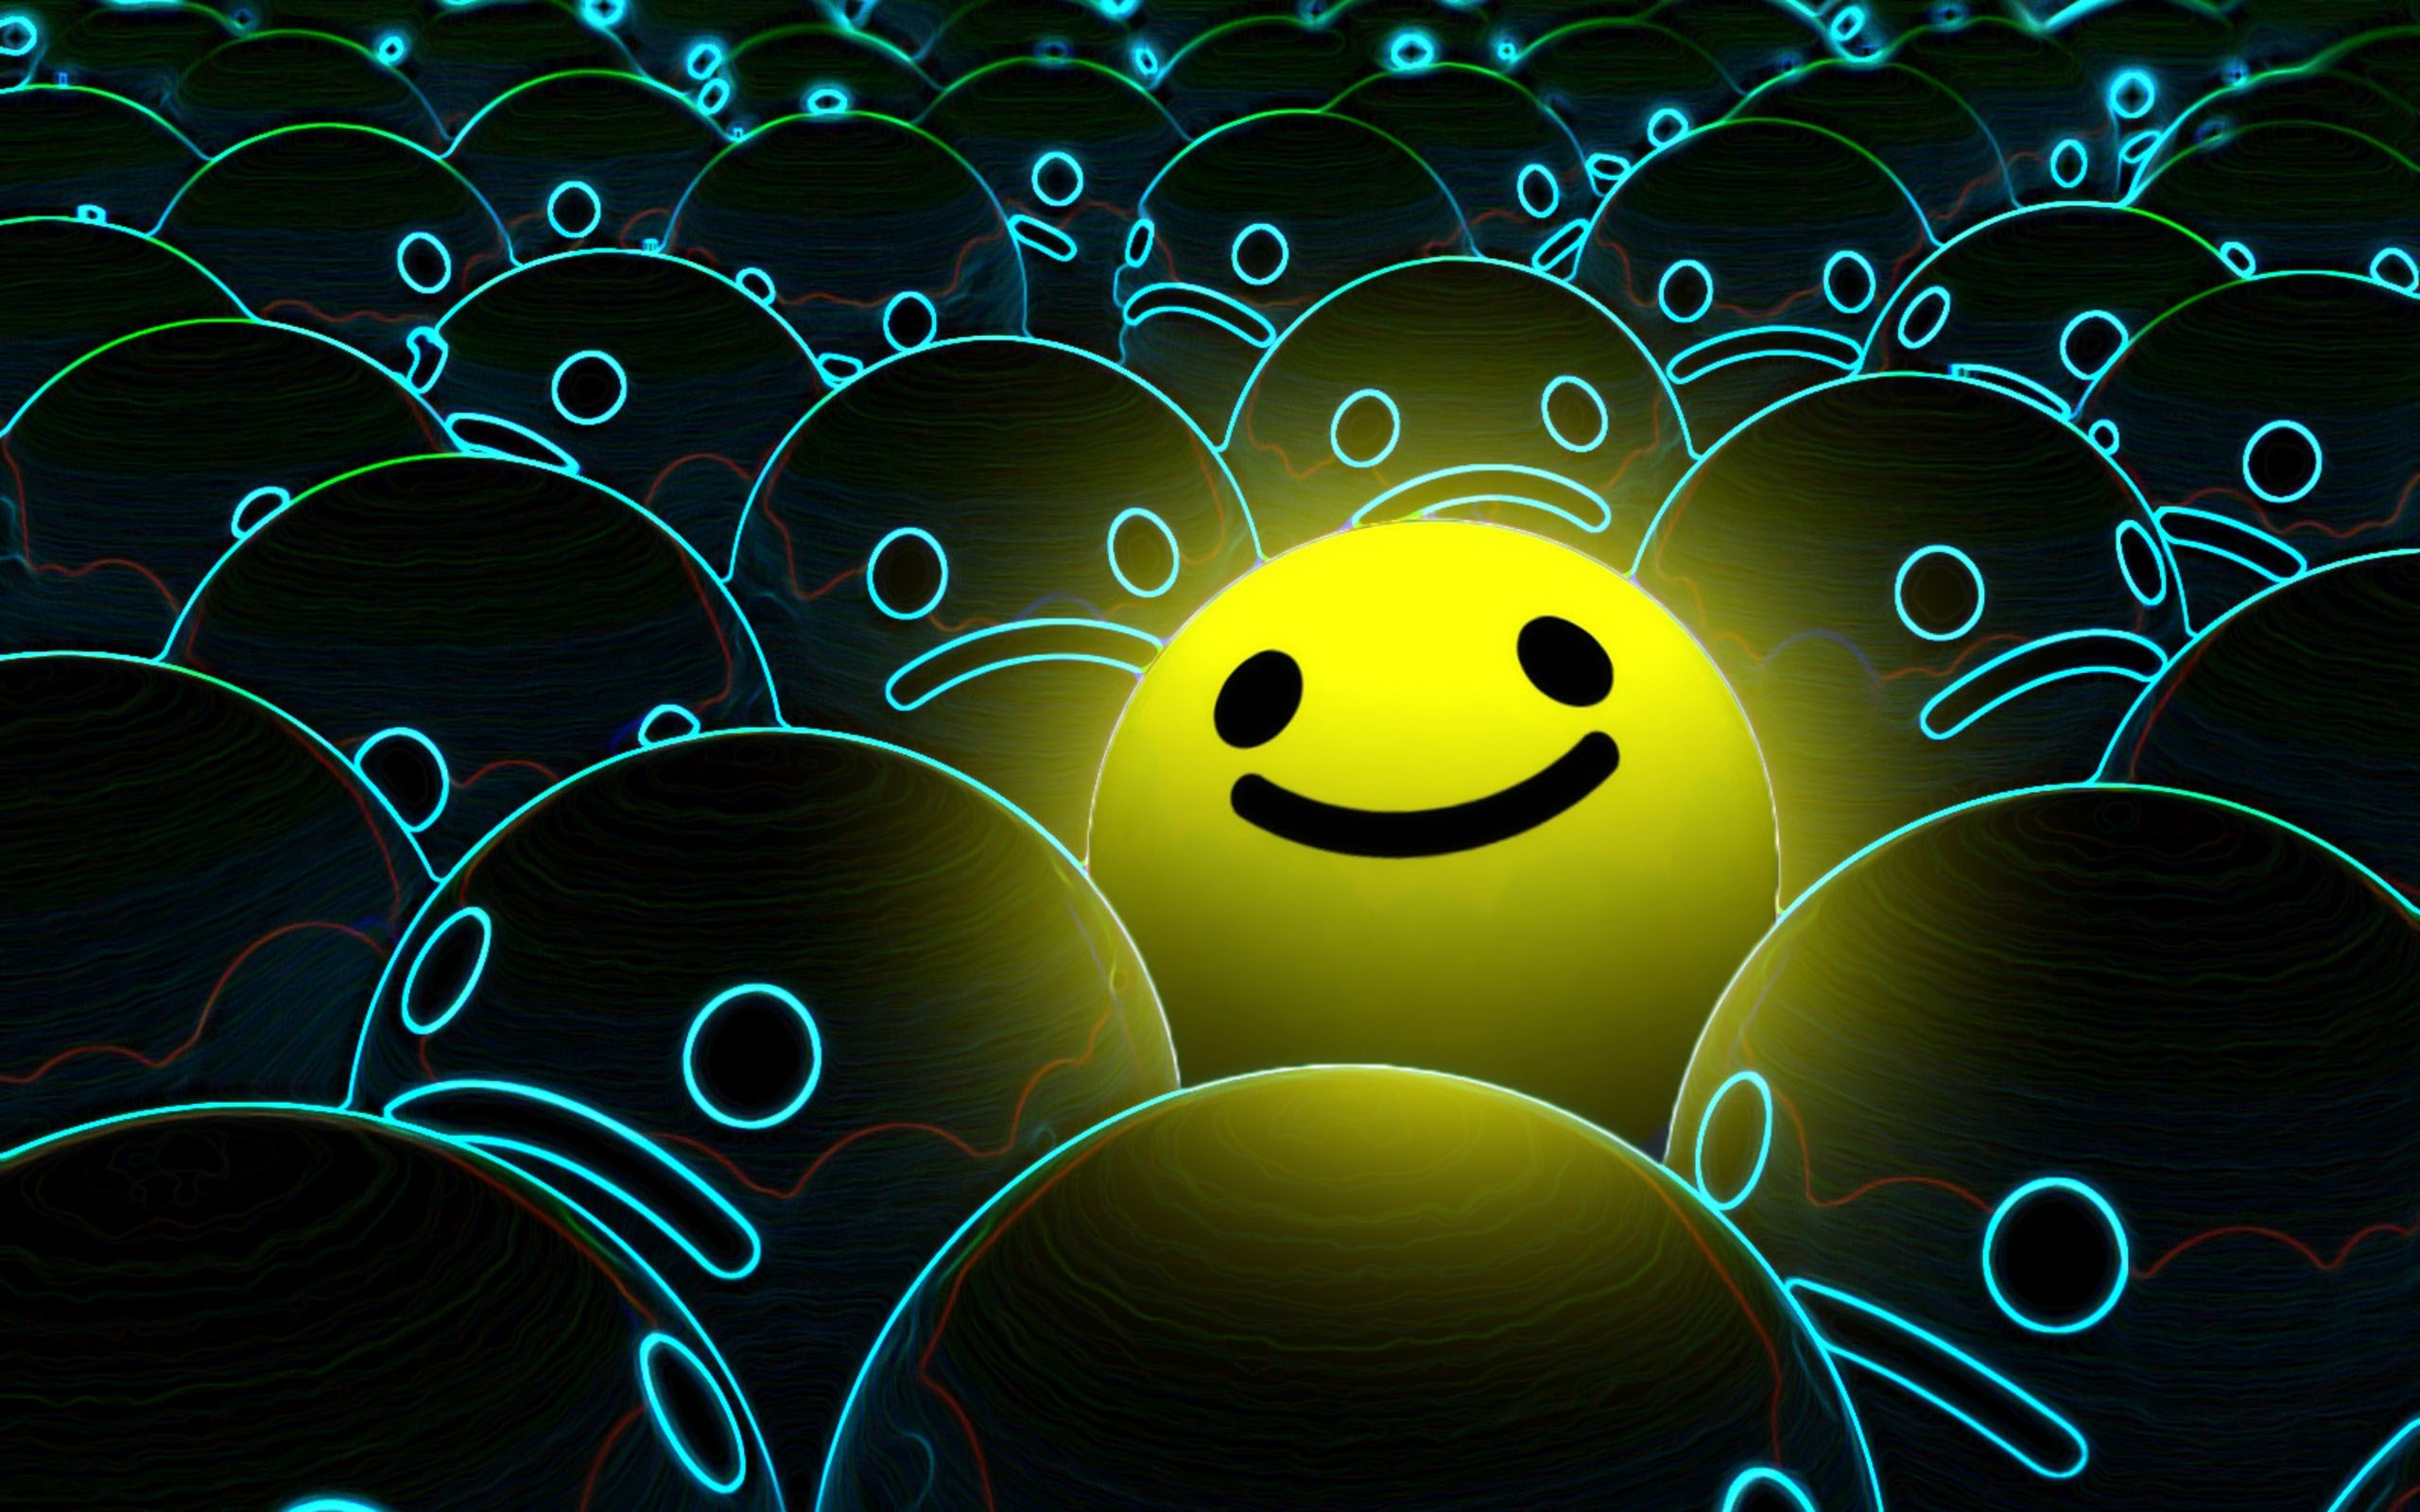 Animated smiley face backgrounds examples and forms wallpapers for ampgt animated smiley face backgrounds wallpaper in animated smiley face voltagebd Image collections